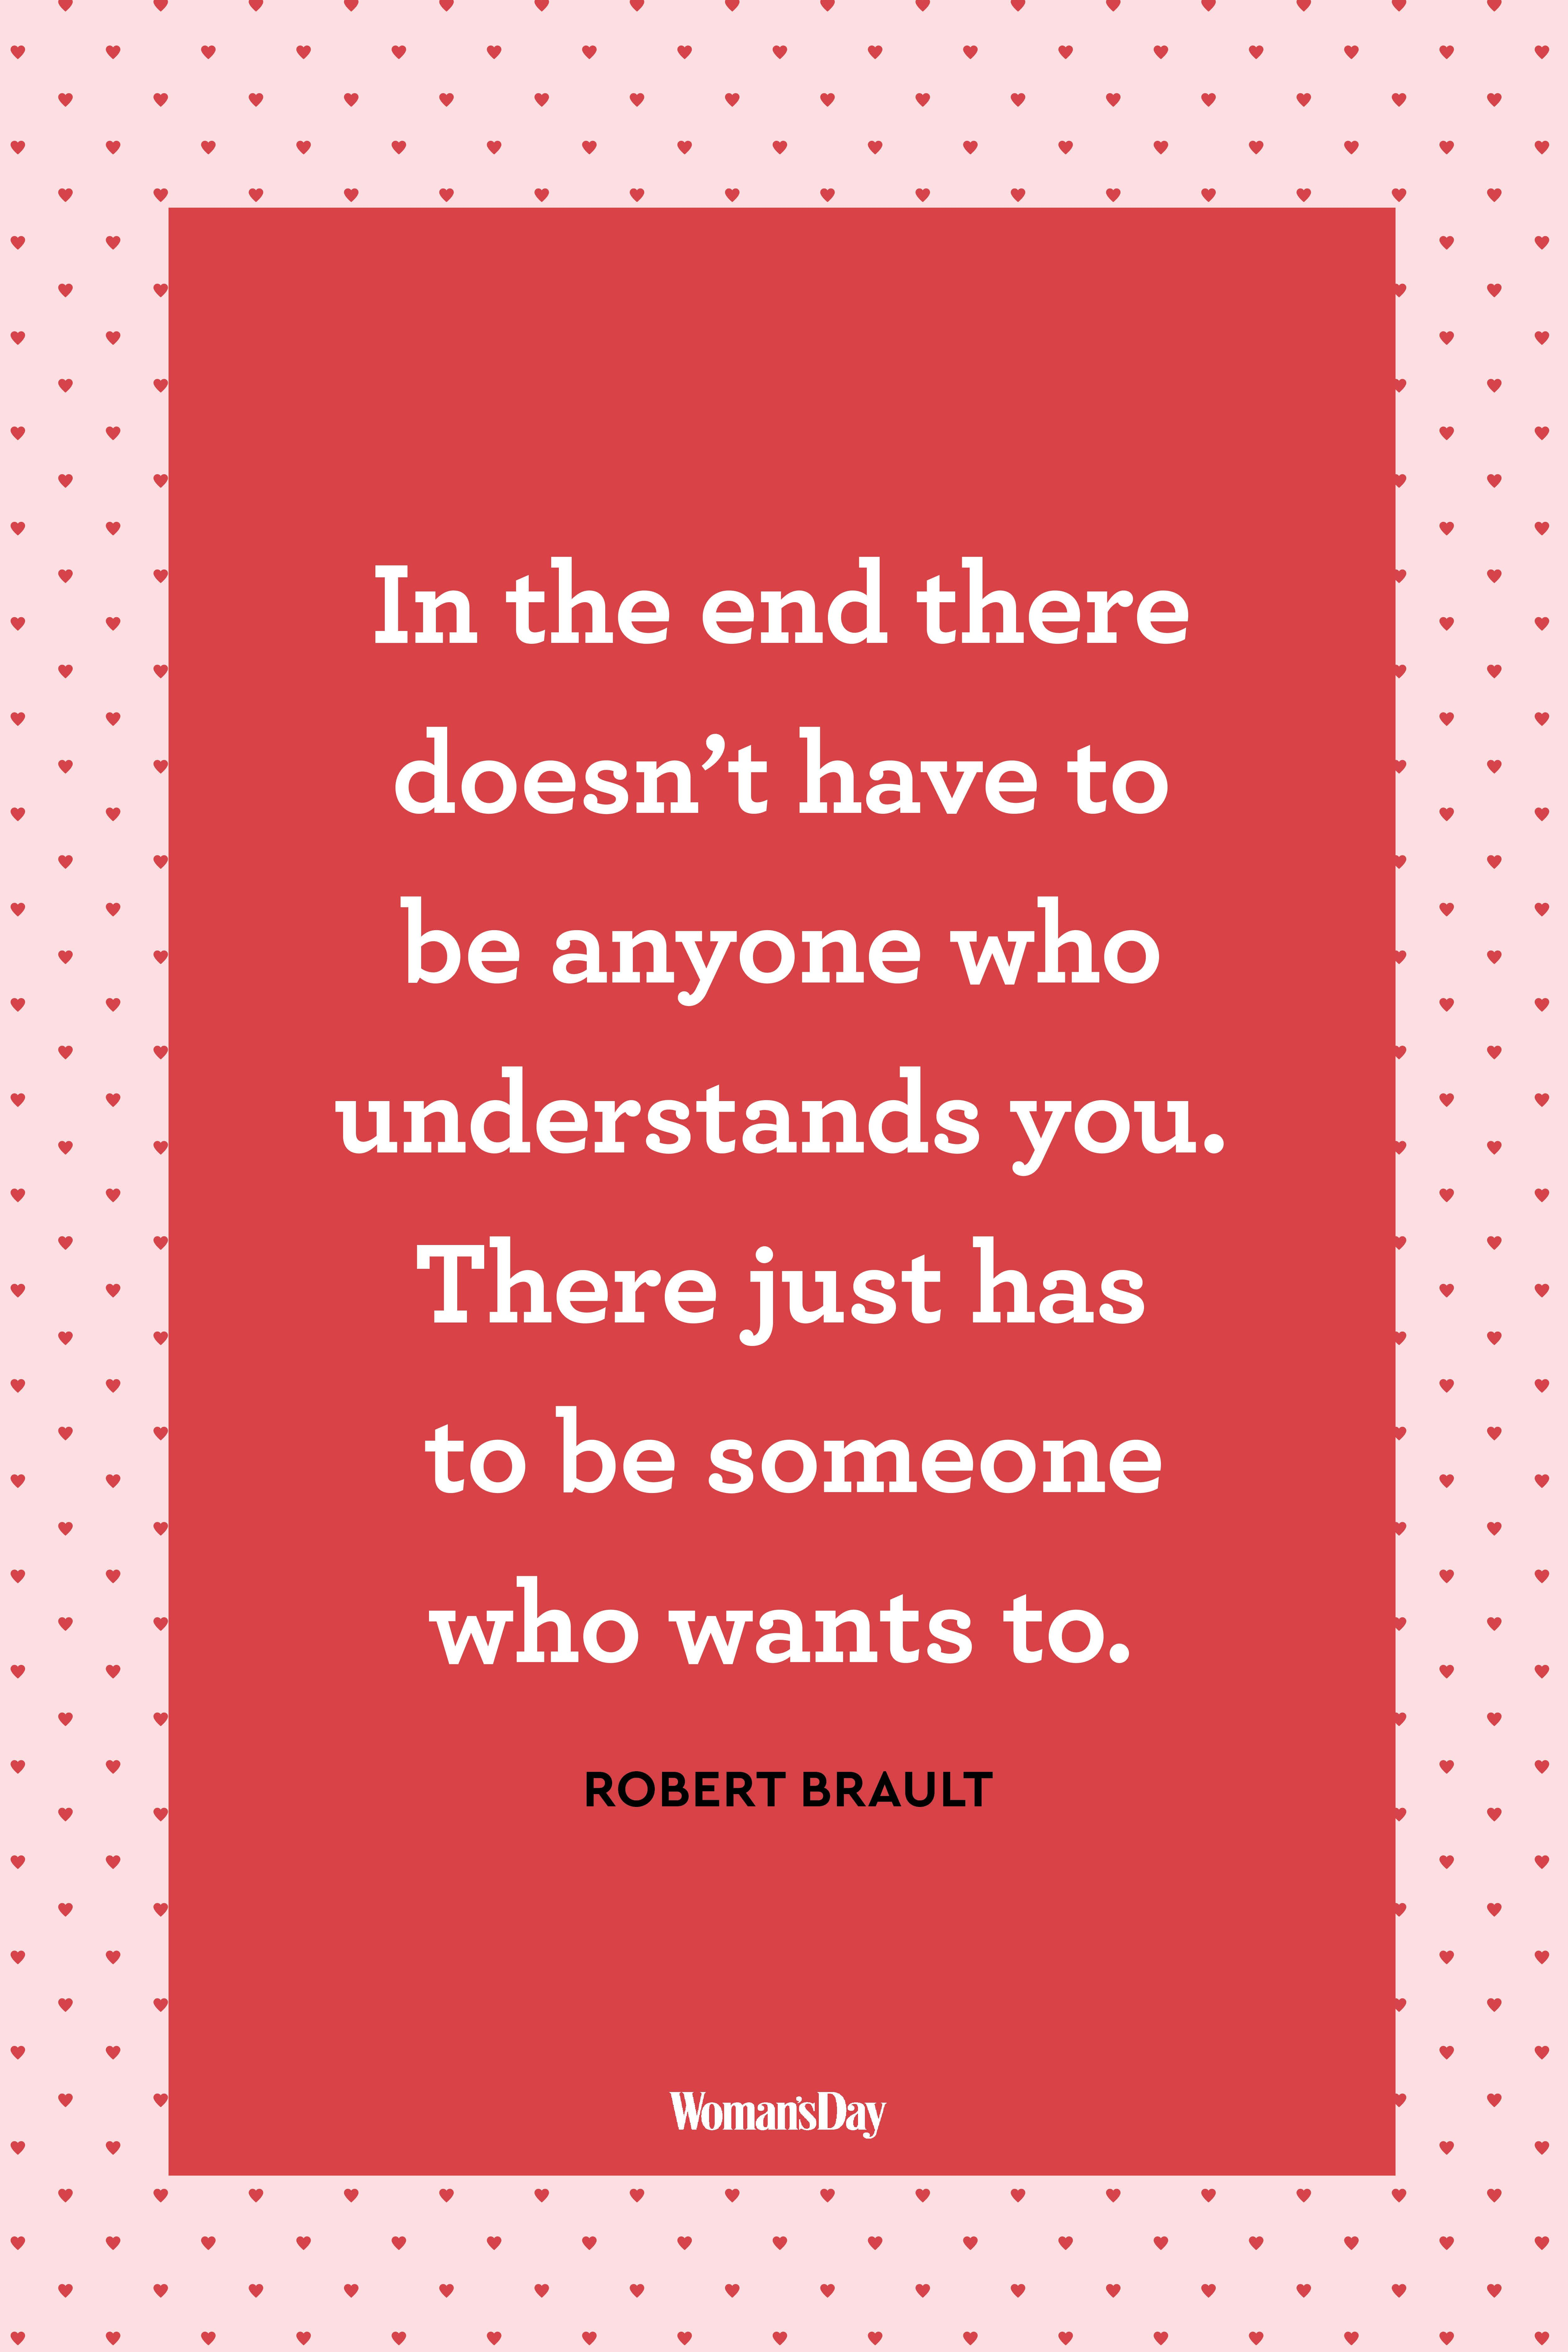 Image of: Love Relationship Quotes Womans Day 15 Relationship Quotes Quotes About Relationships